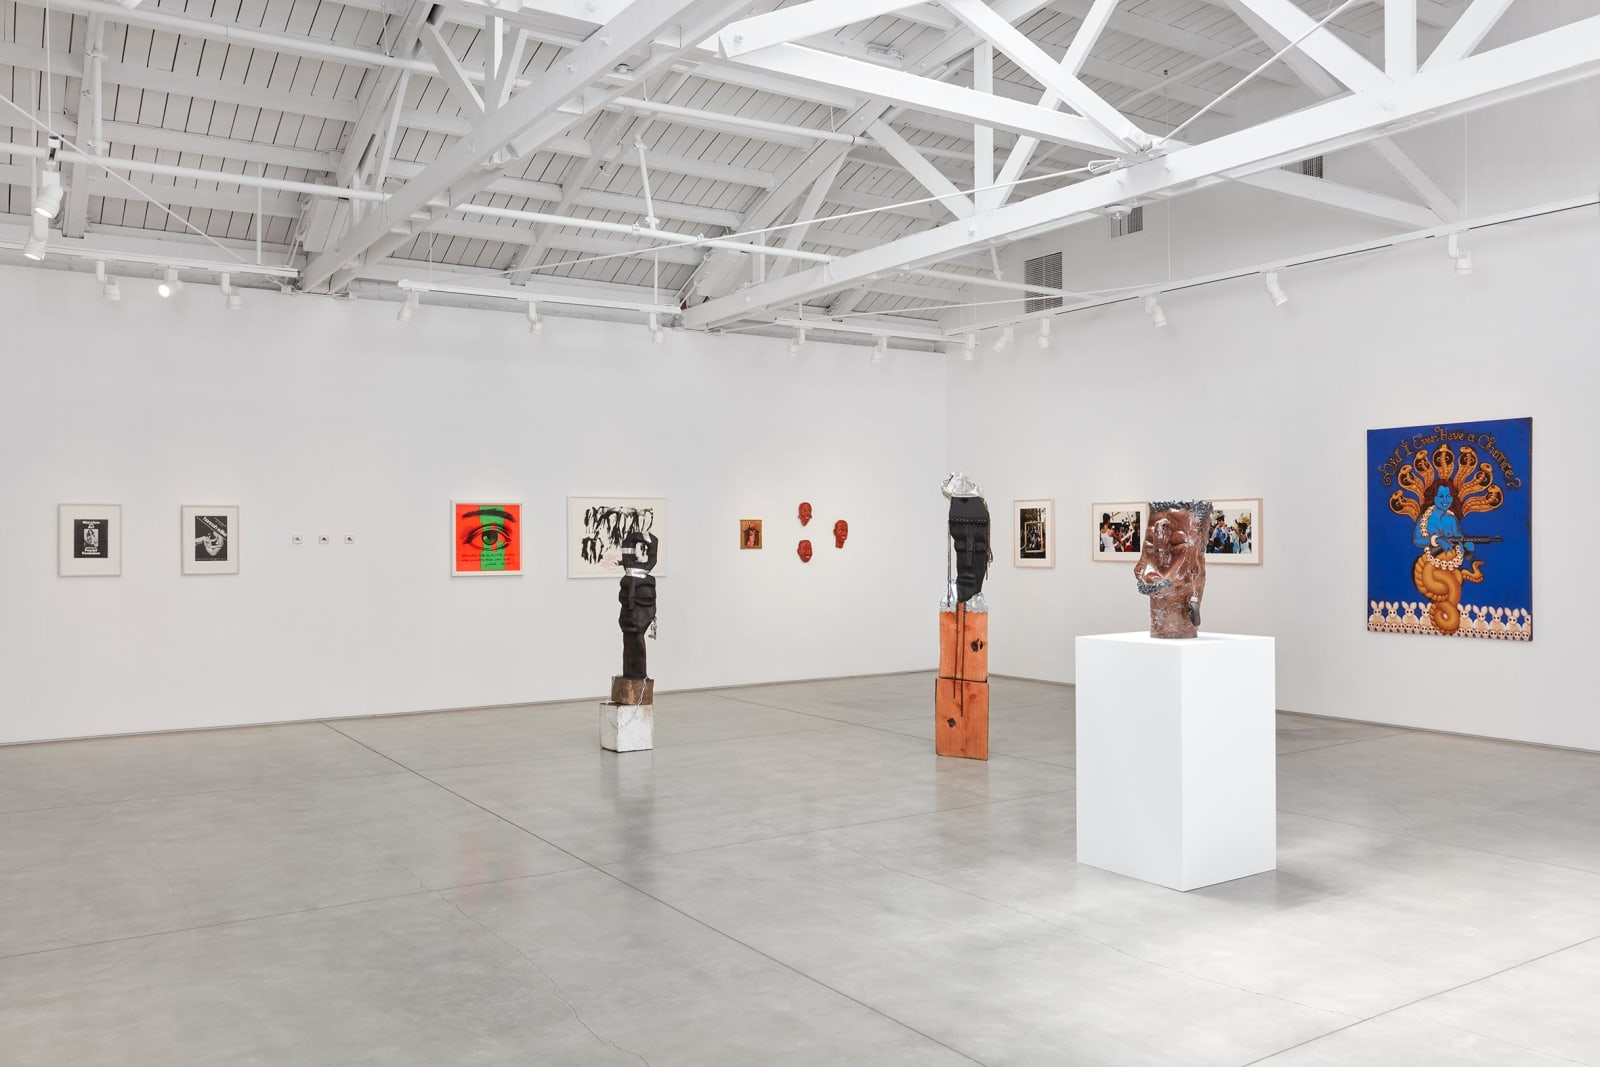 <p>Installation view: 'Did I Ever Have a Chance?', Group Exhibition, Marc Selwyn Fine Art in collaboration with Gordon Robichaux, Los Angeles, CA (2020). <span>Photo by Paul Salveson.</span></p>